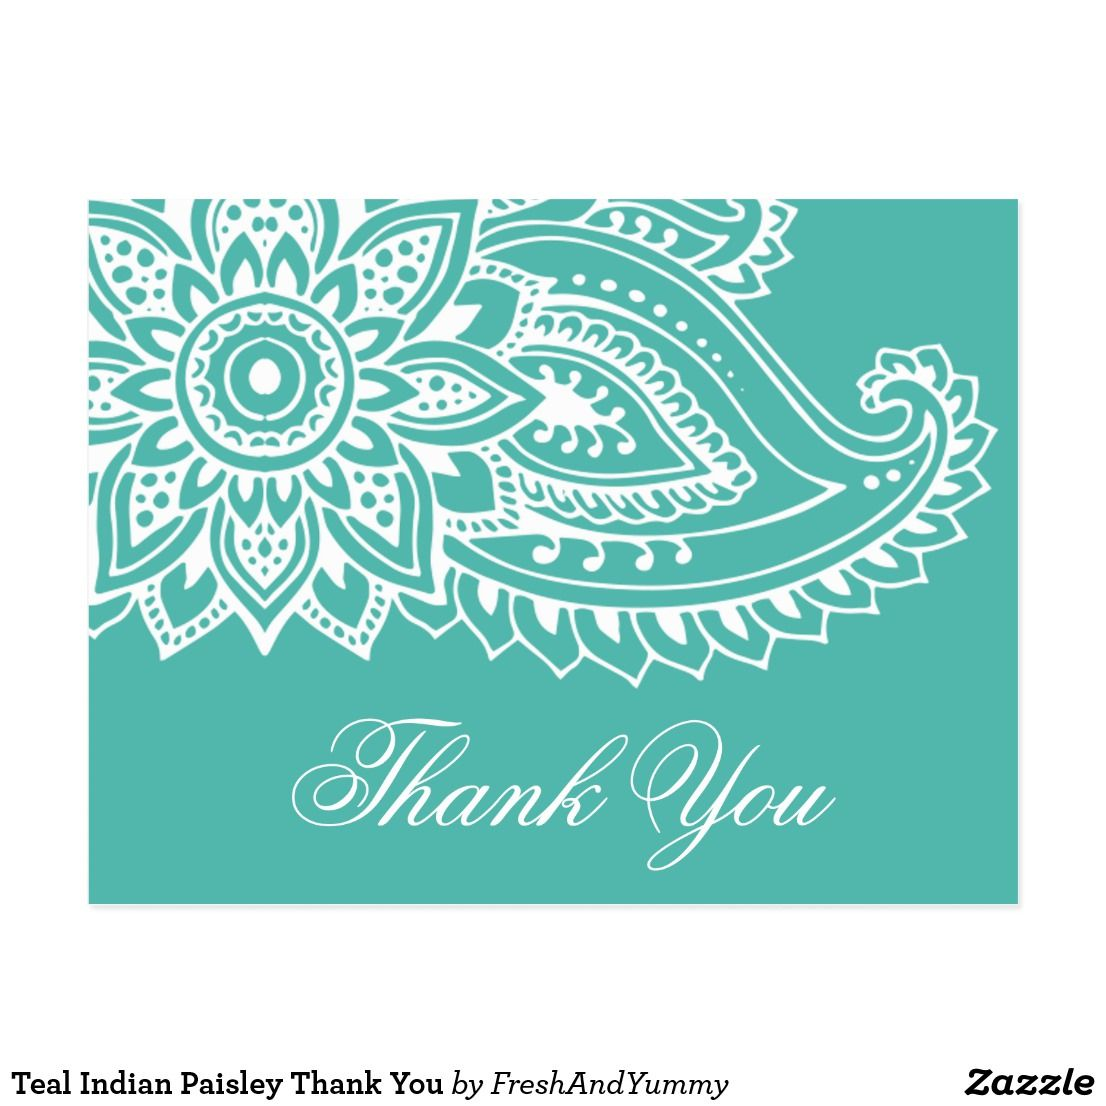 Teal Indian Paisley Thank You Postcard Zazzle com